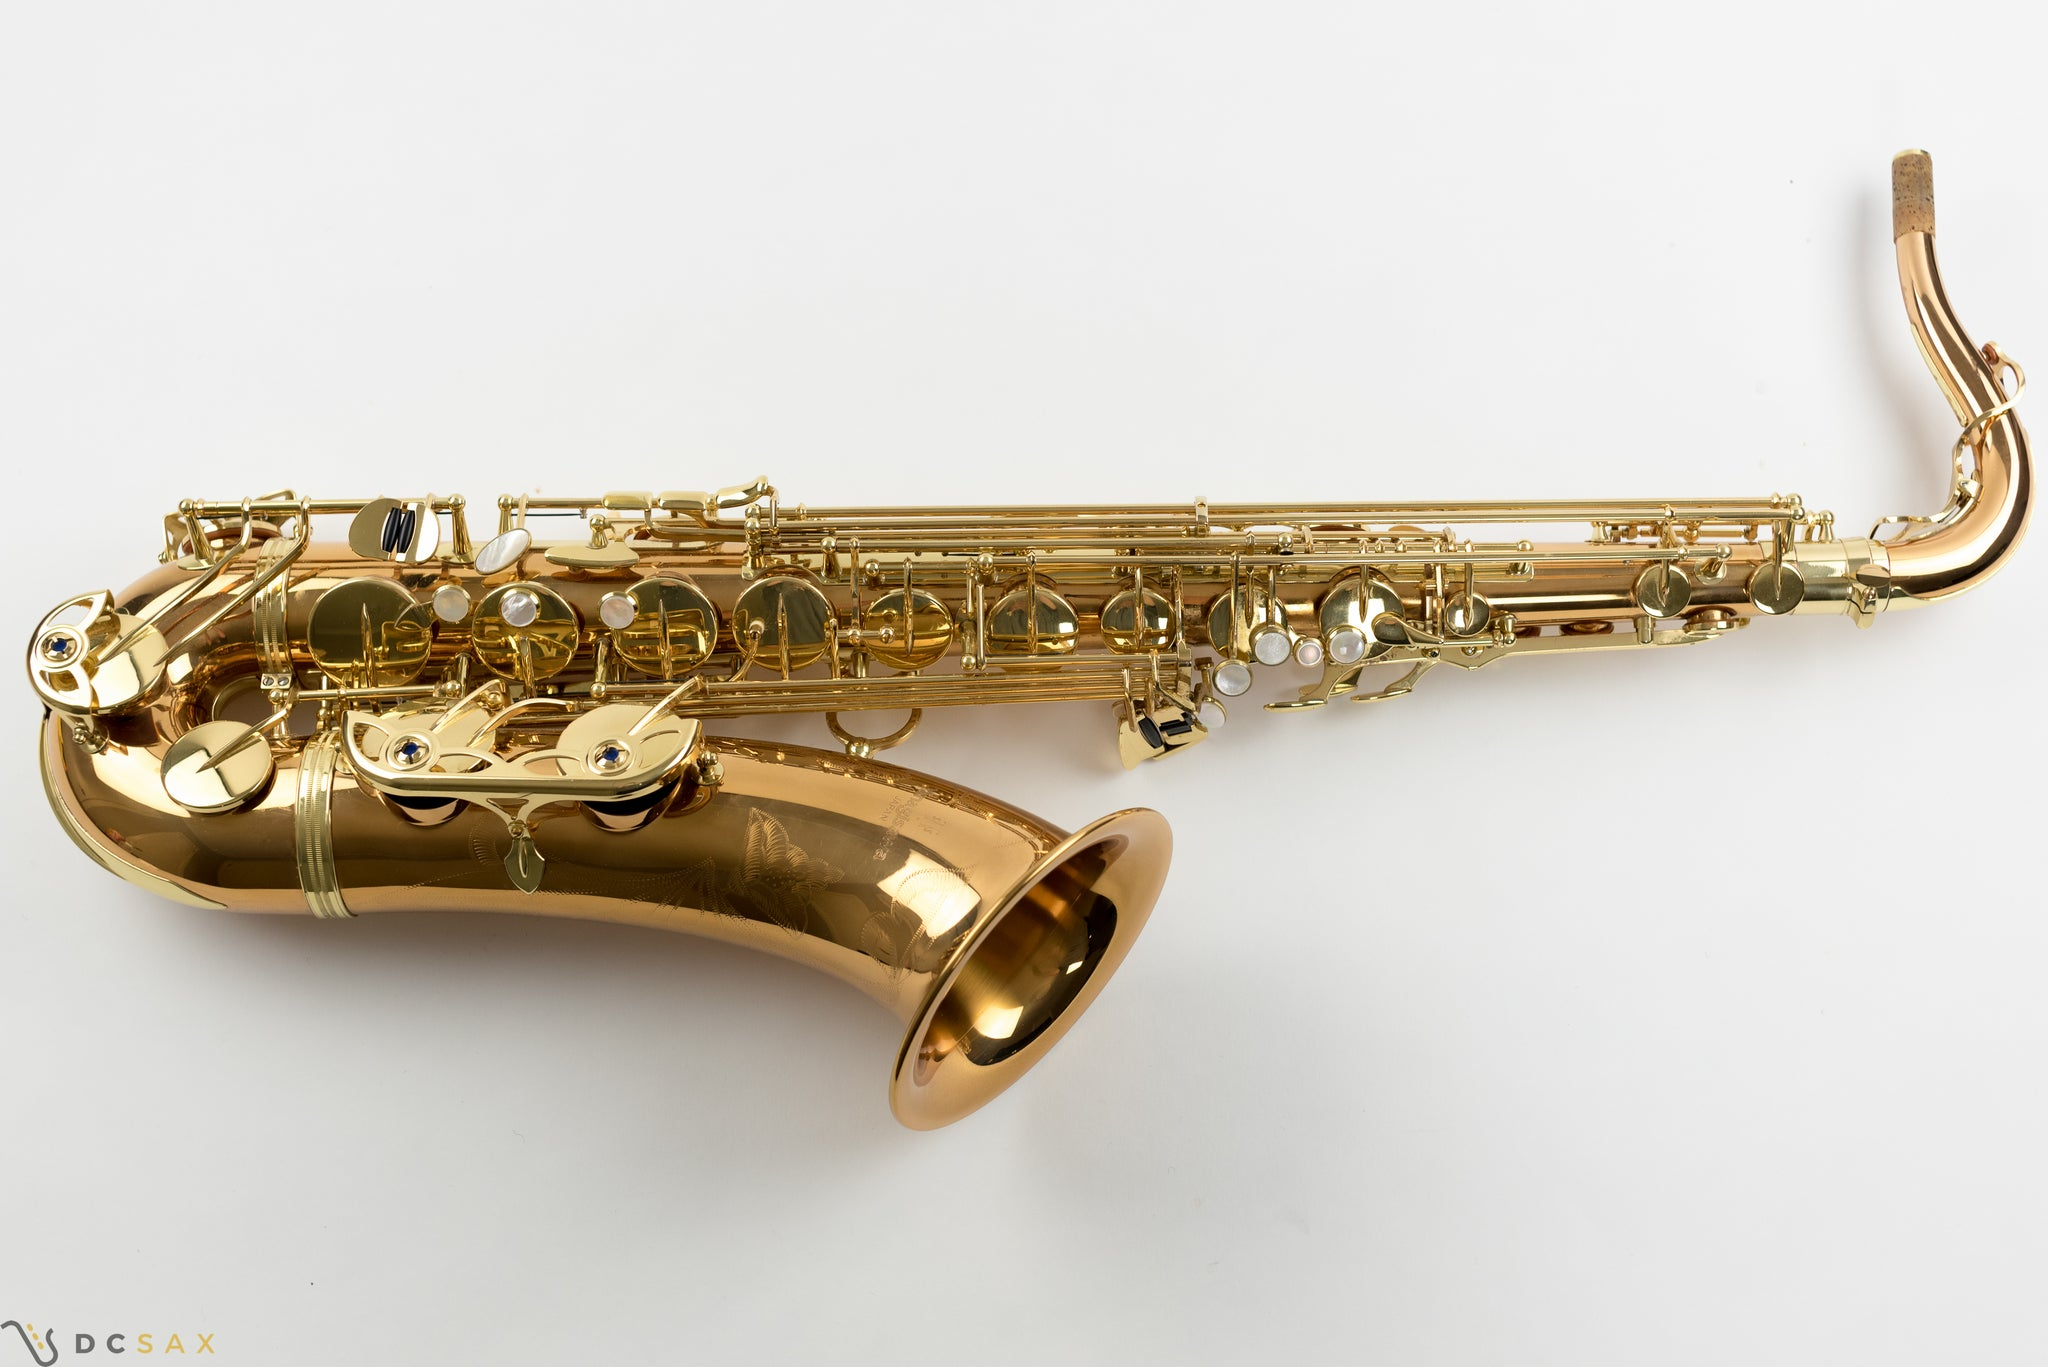 Yanagisawa 992 Tenor Saxophone With Bronze Finish, Near Mint